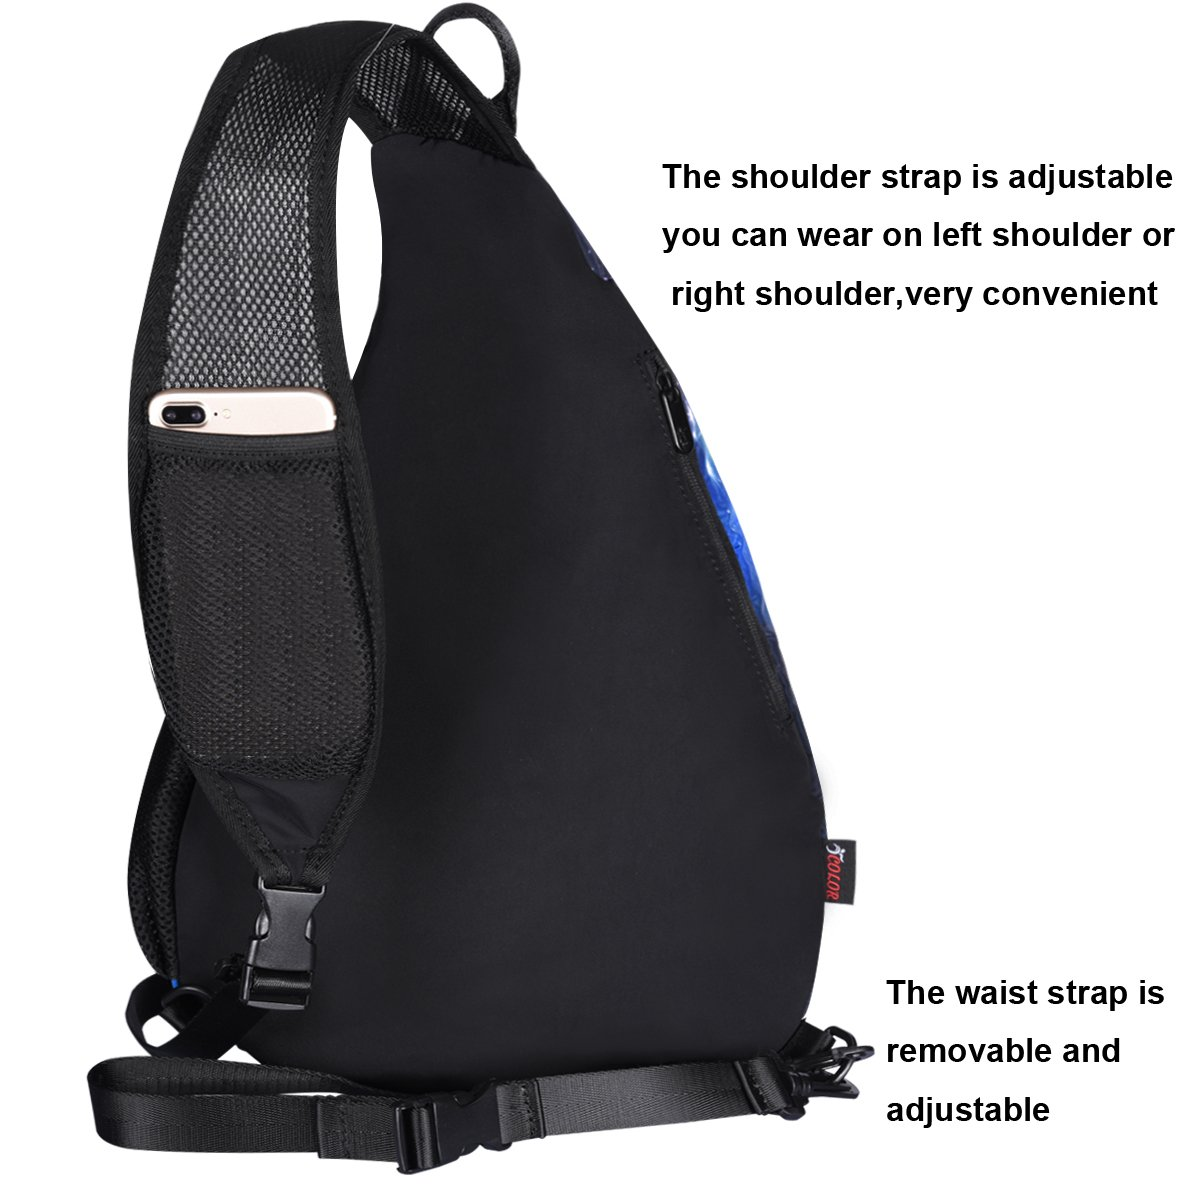 ICOLOR Unisex CrossBody Shoulder Sling Bag Travel Backpack Chest Bag for Men Women Boys Girls Outdoor Activities ideas Camping Hiking Cycling Bicycling Lightweight Daypack with Adjustable Shoulder Strap